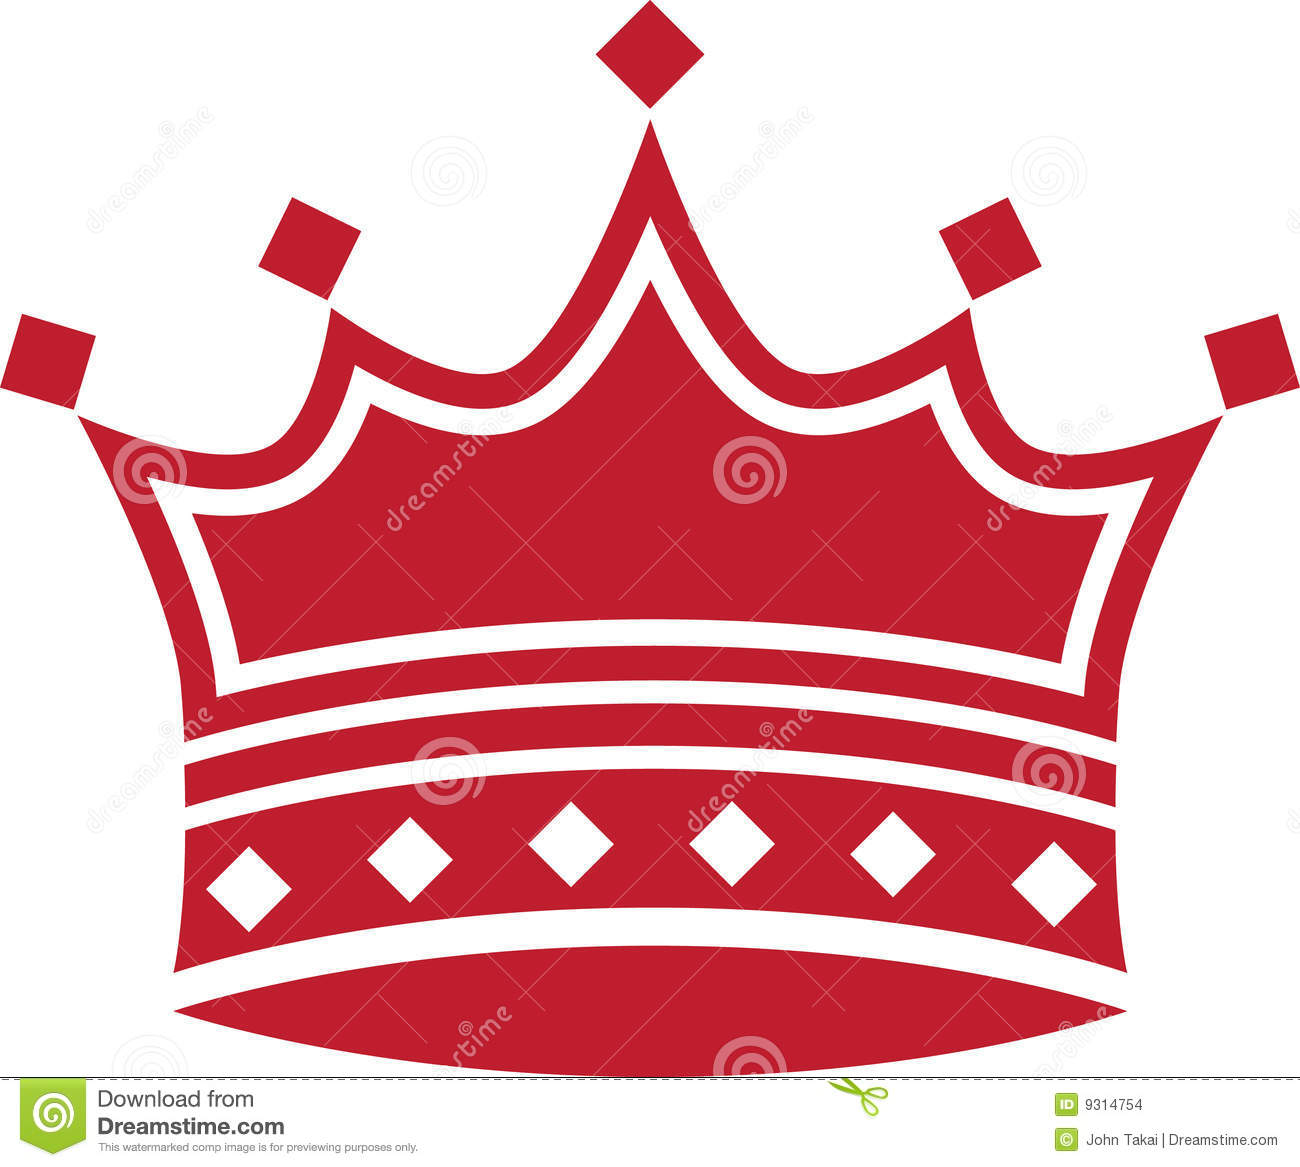 red crown clipart - photo #14